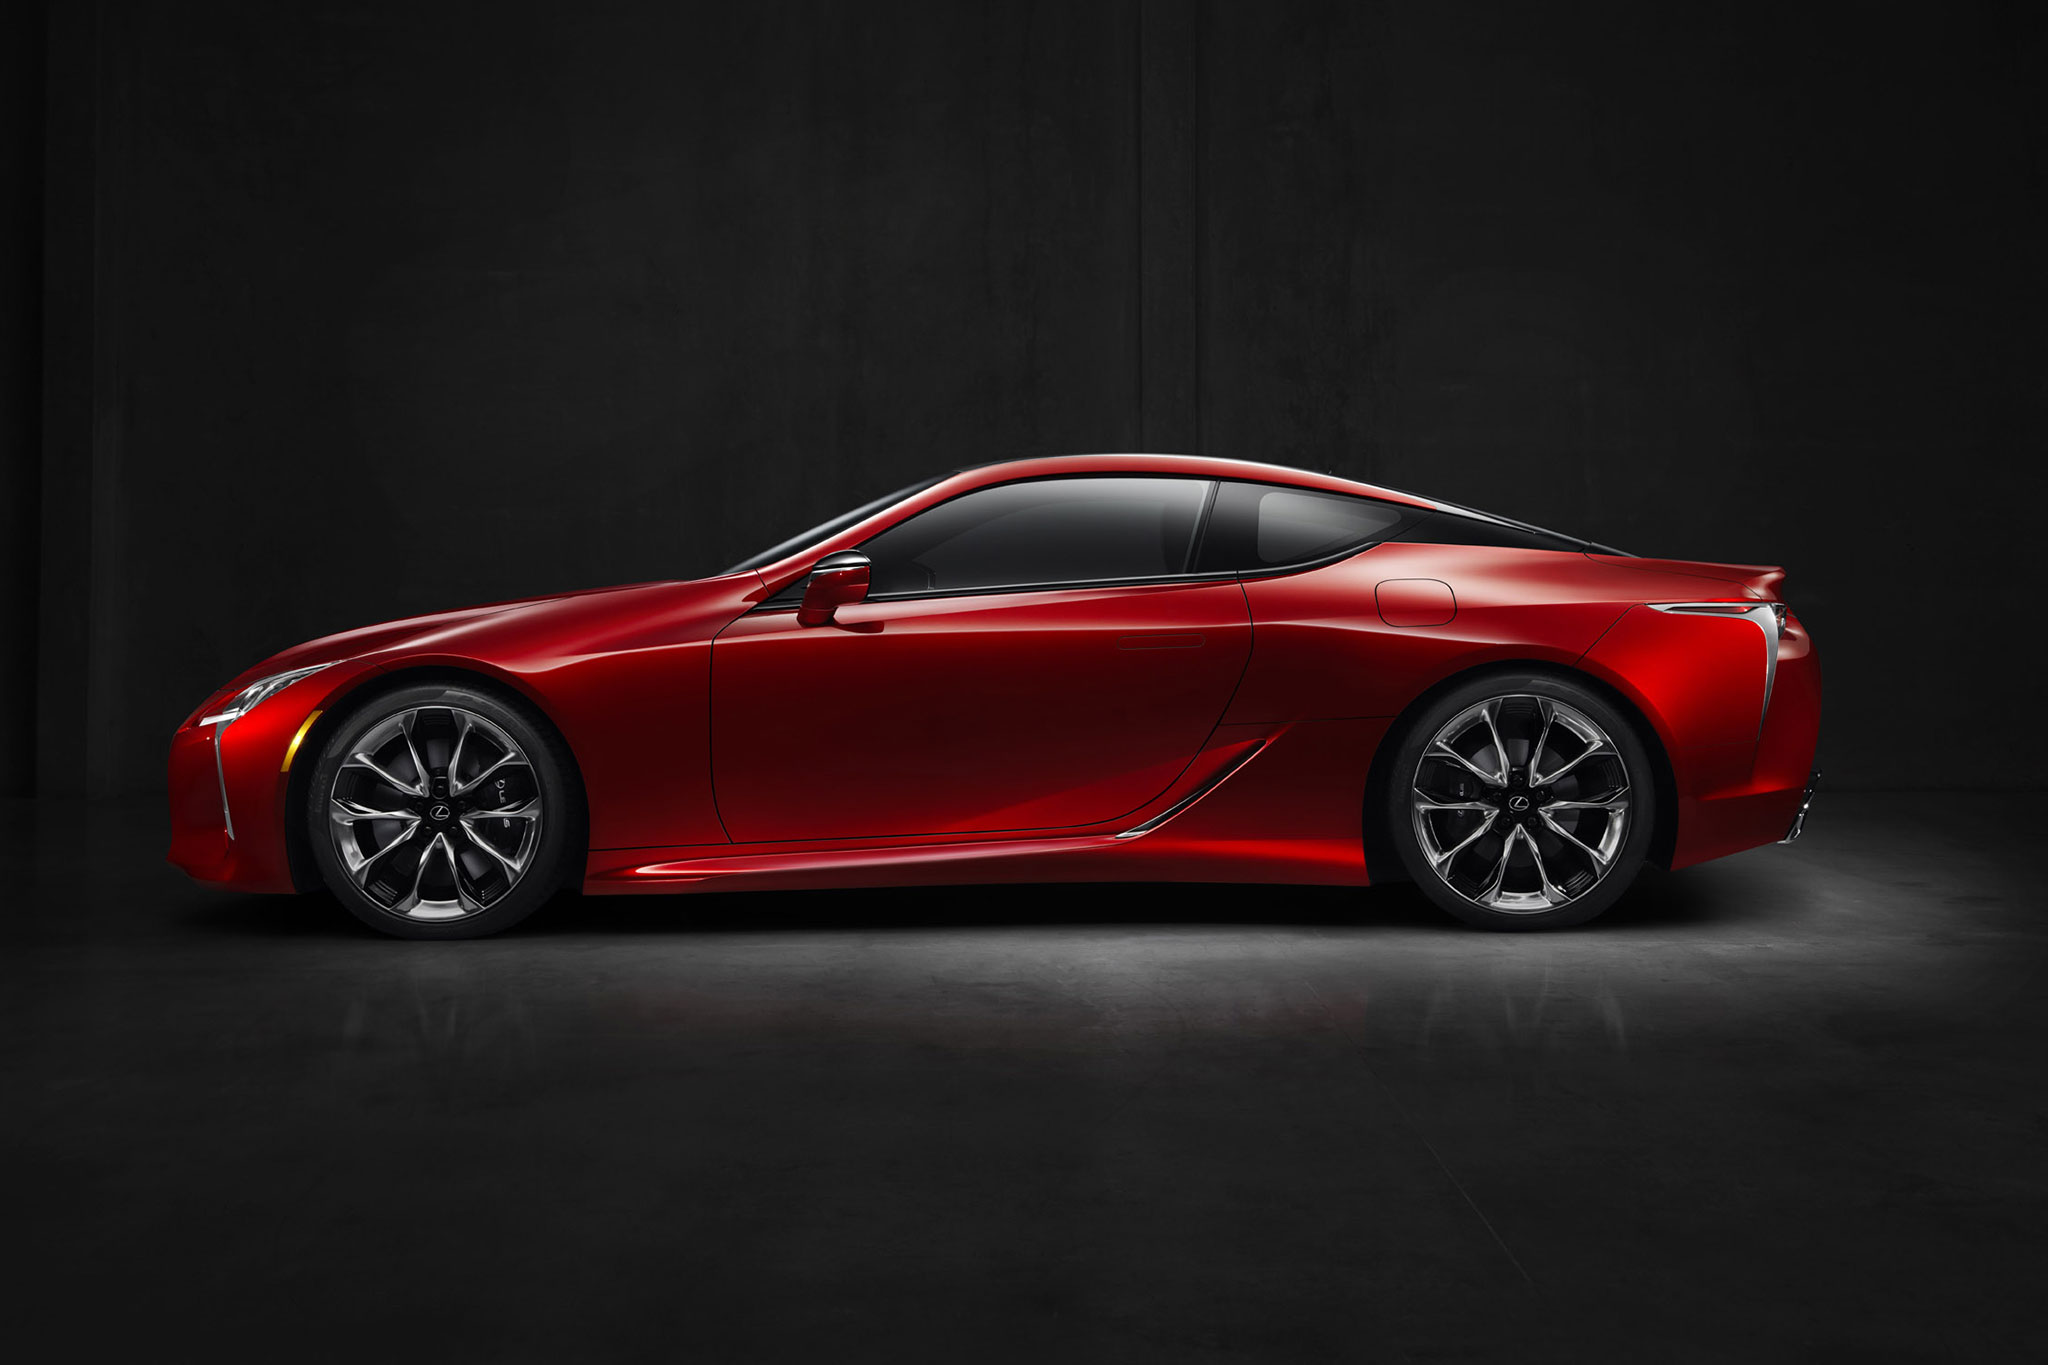 2018 Lexus LC 500 side side profile 02